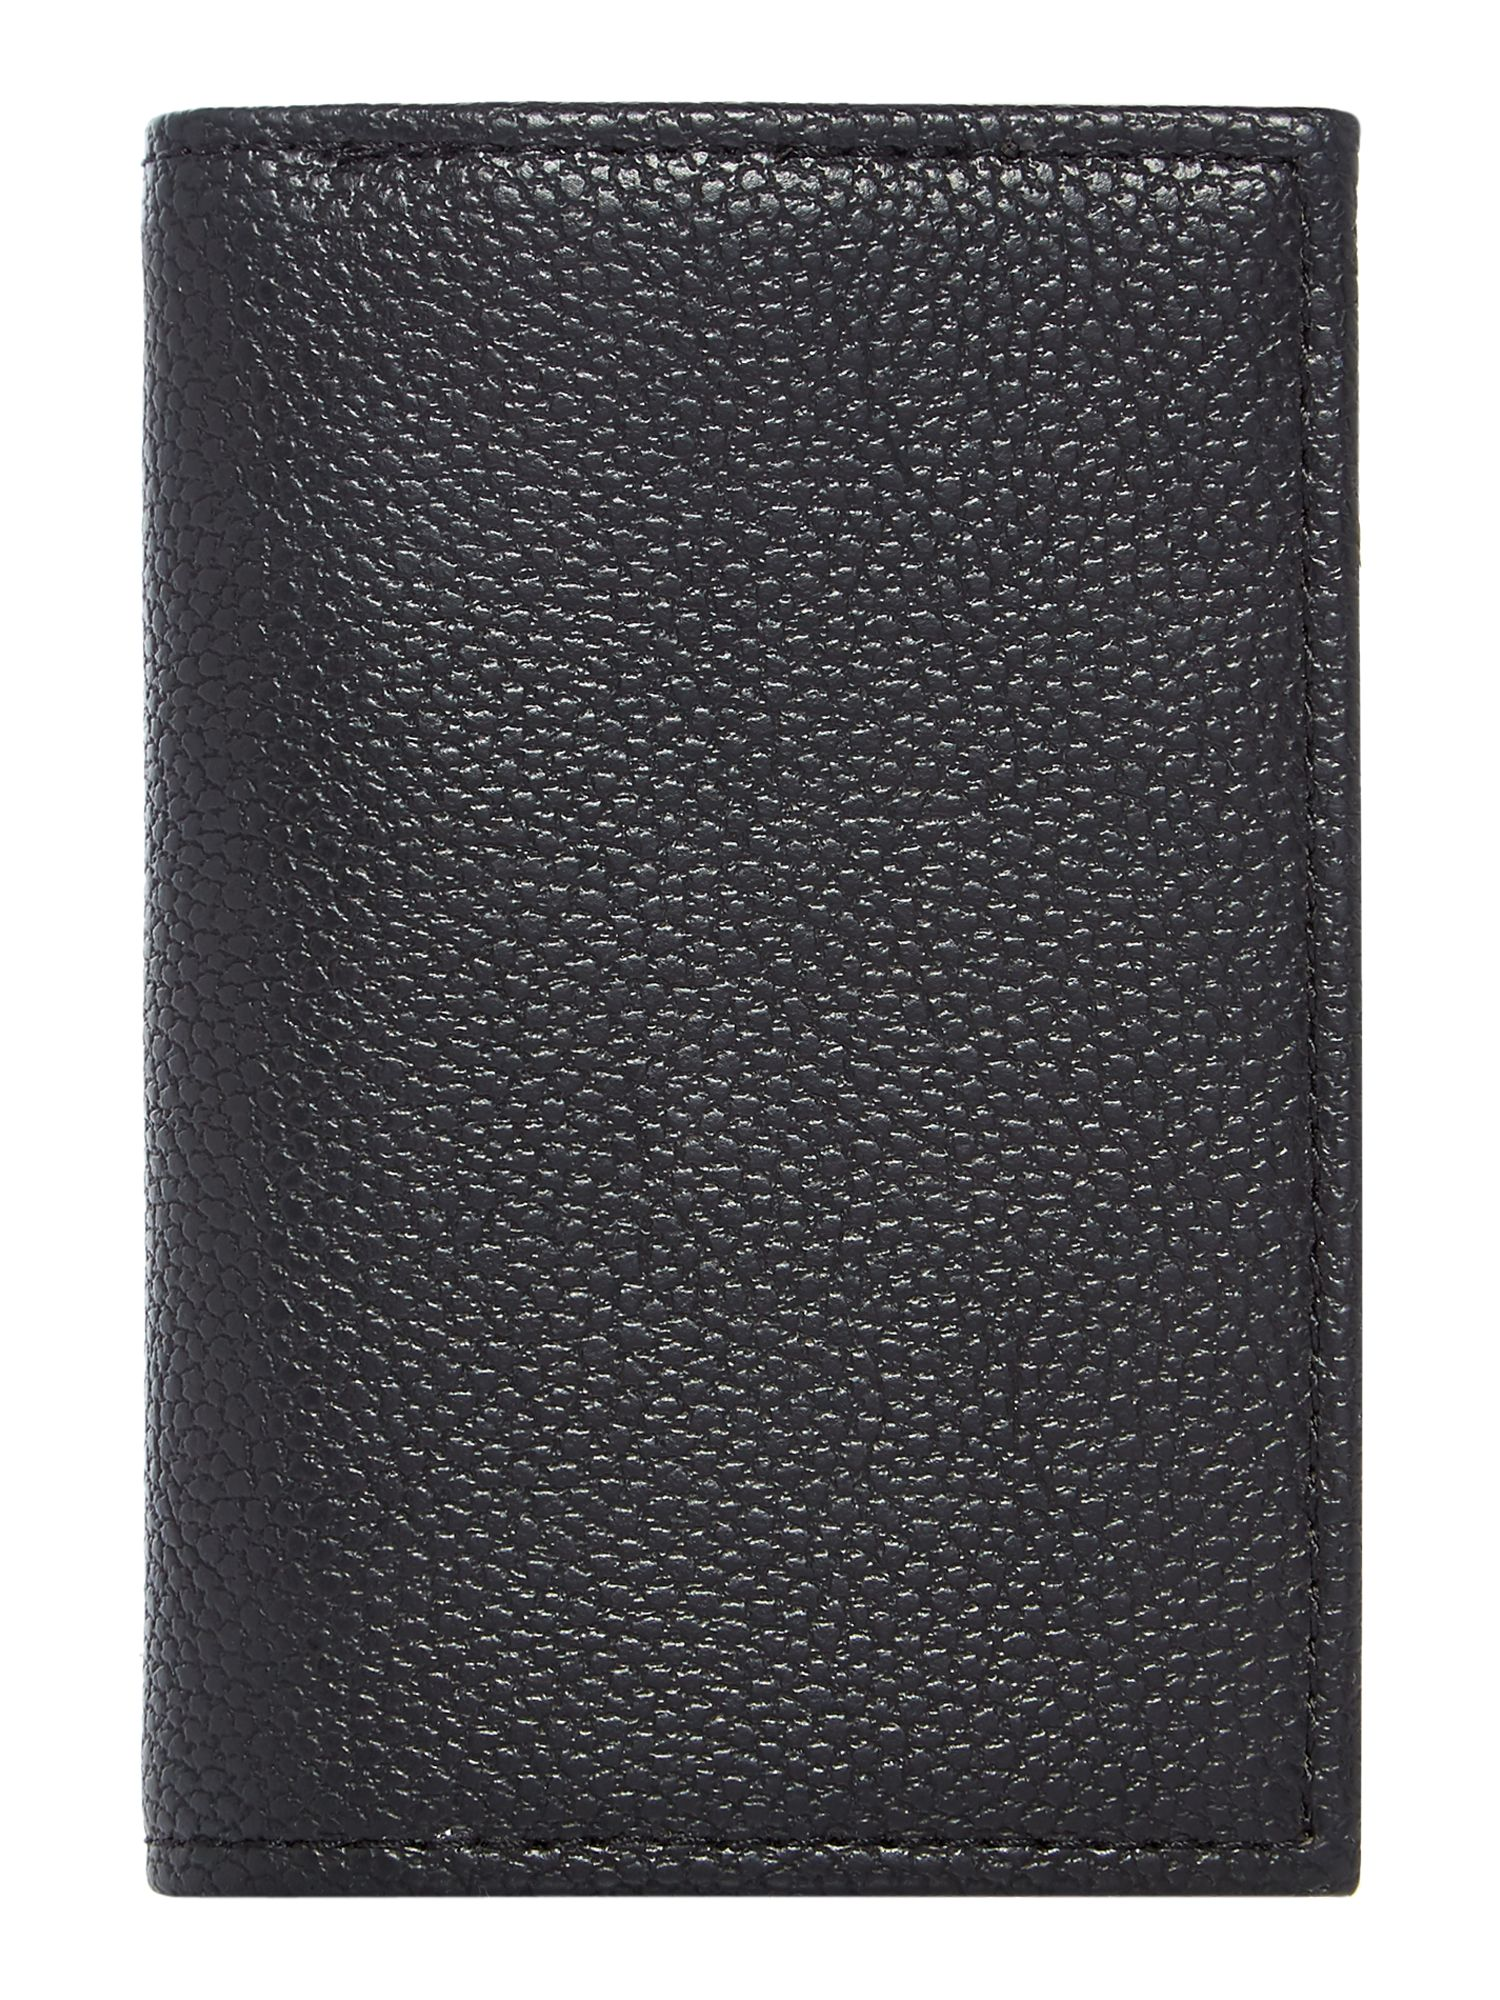 Therapy Colour block card holder, Black